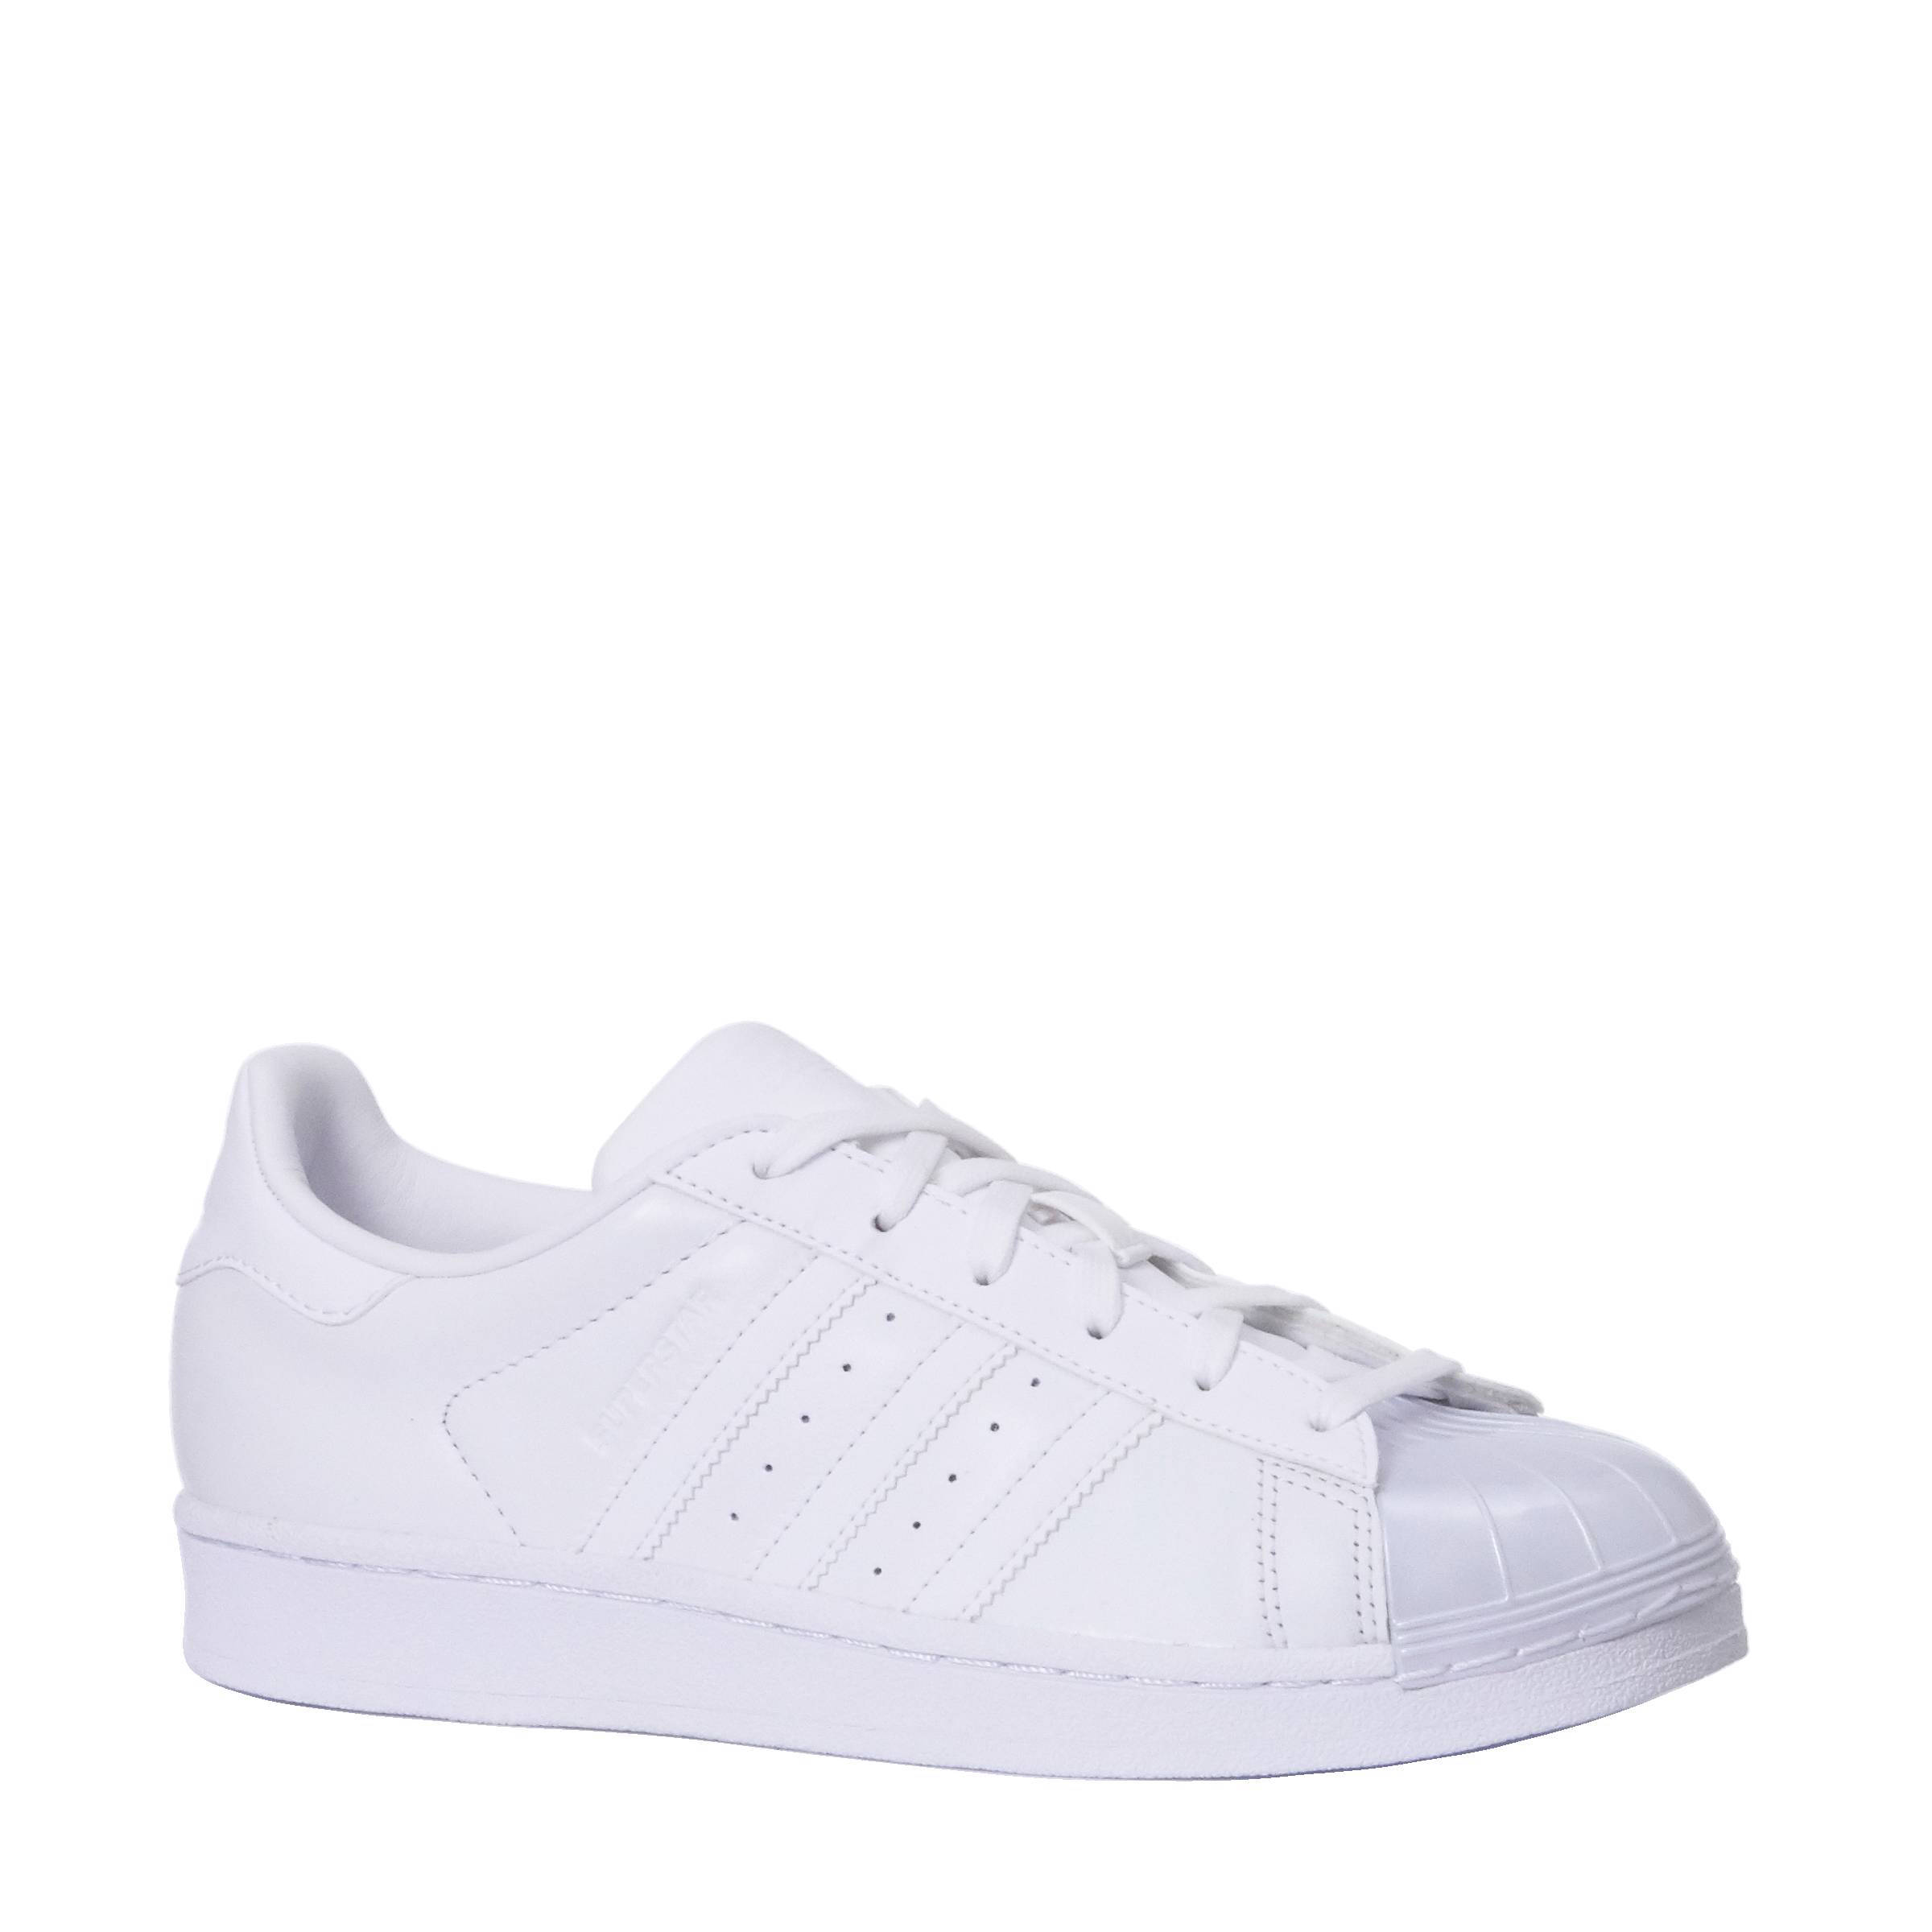 adidas Originals Superstar Glossy TO sneakers